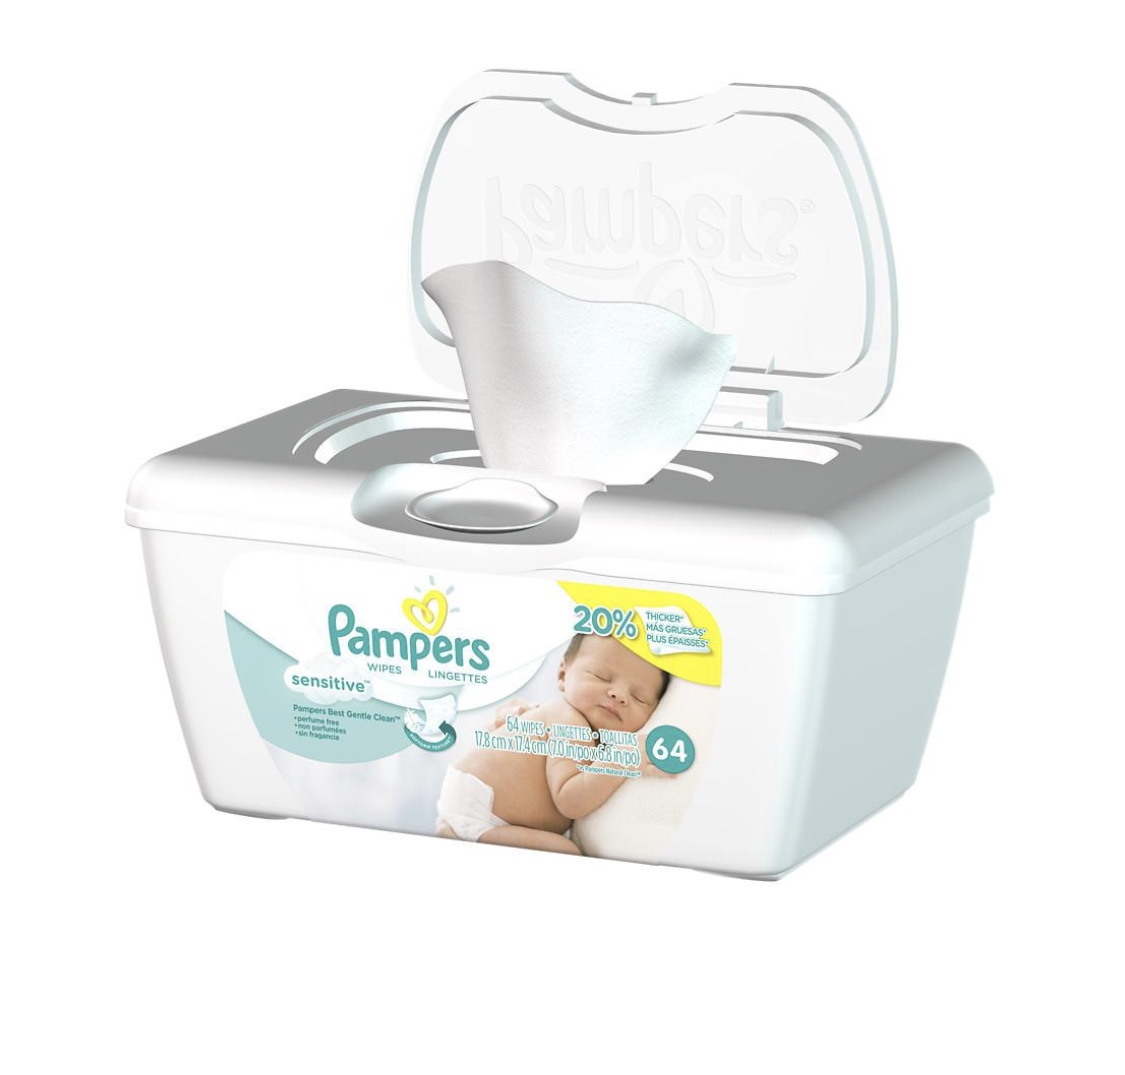 Pampers Sensitive Baby Wipes - Price: $4You can't shower. You can't use deodorant. You'll want these!!